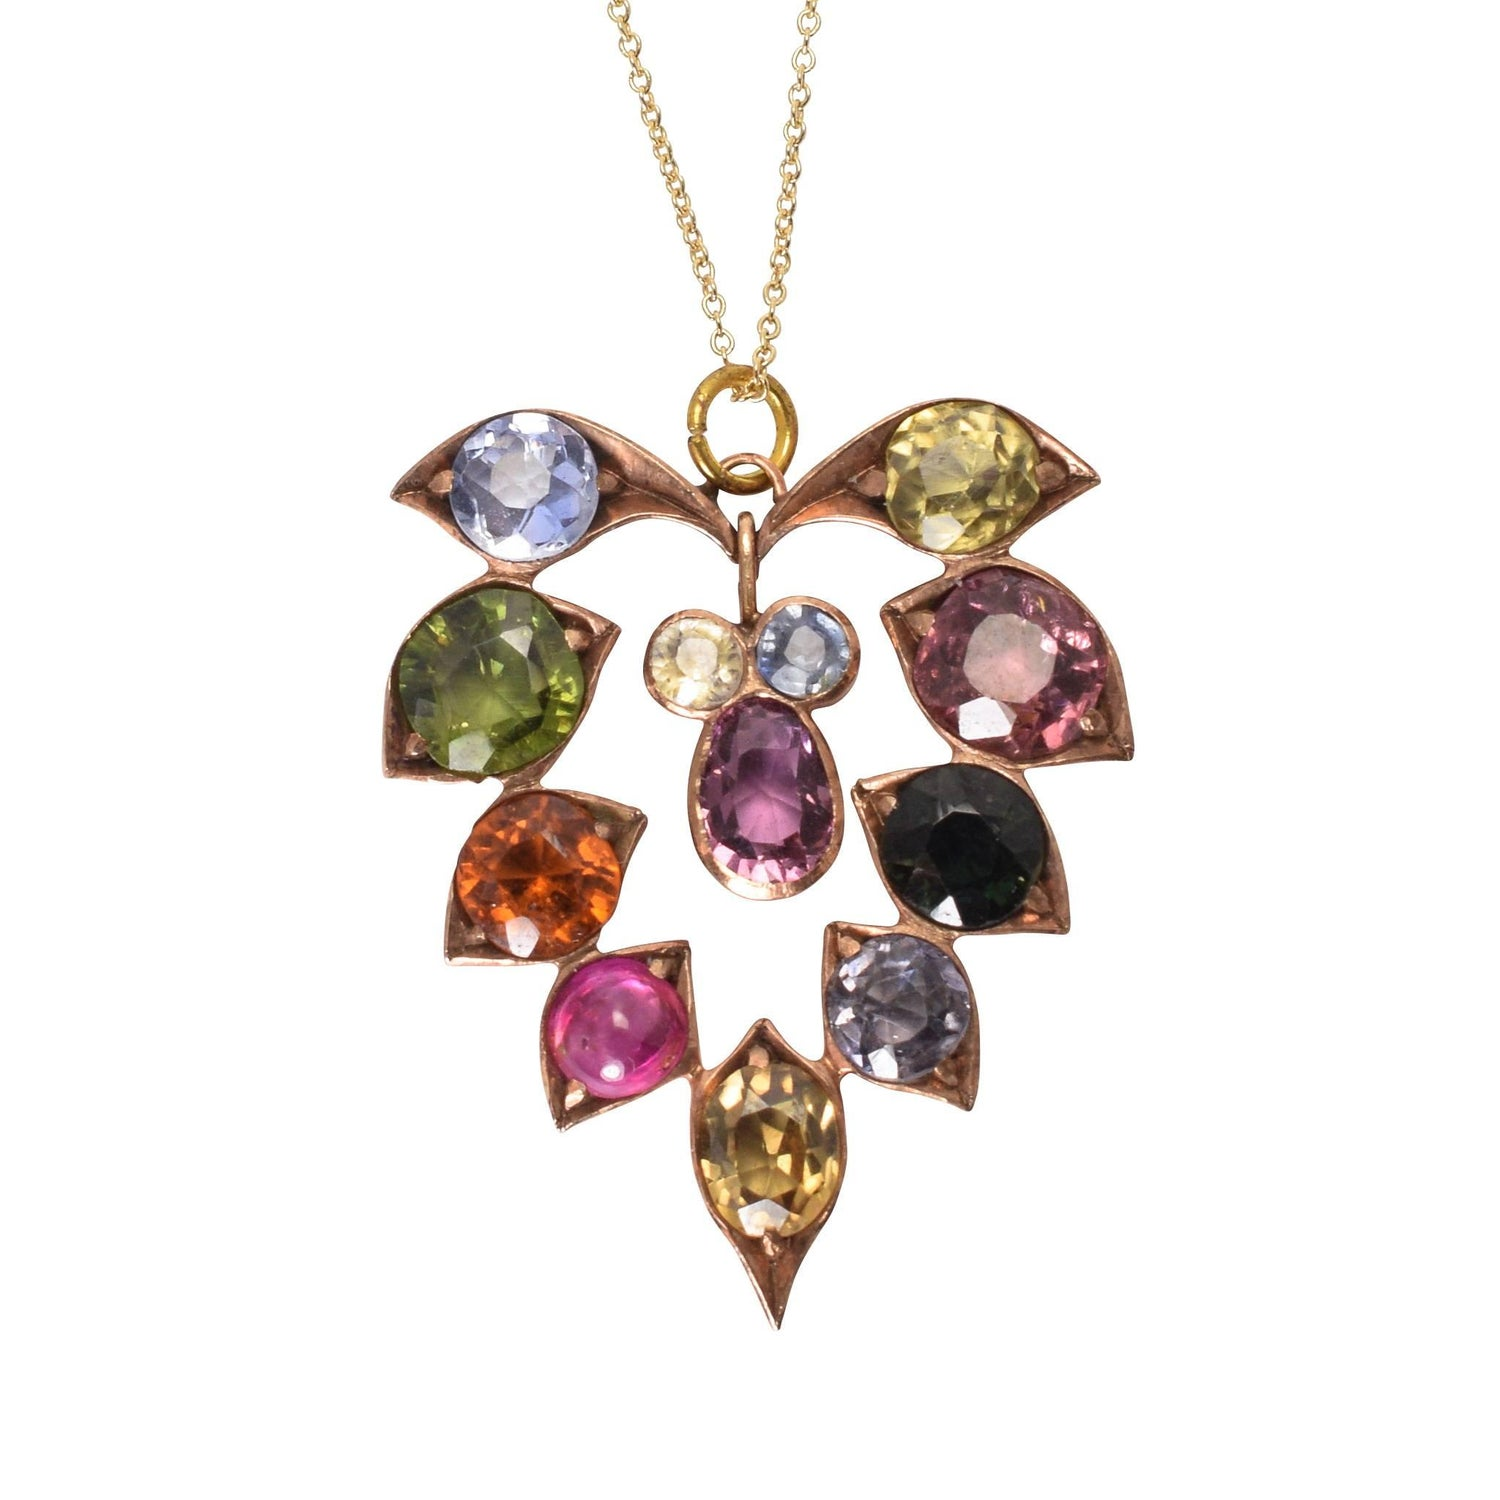 Bvlgari allegra multi gem pendant necklace at 1stdibs victorian multi gem harlequin pendant aloadofball Image collections